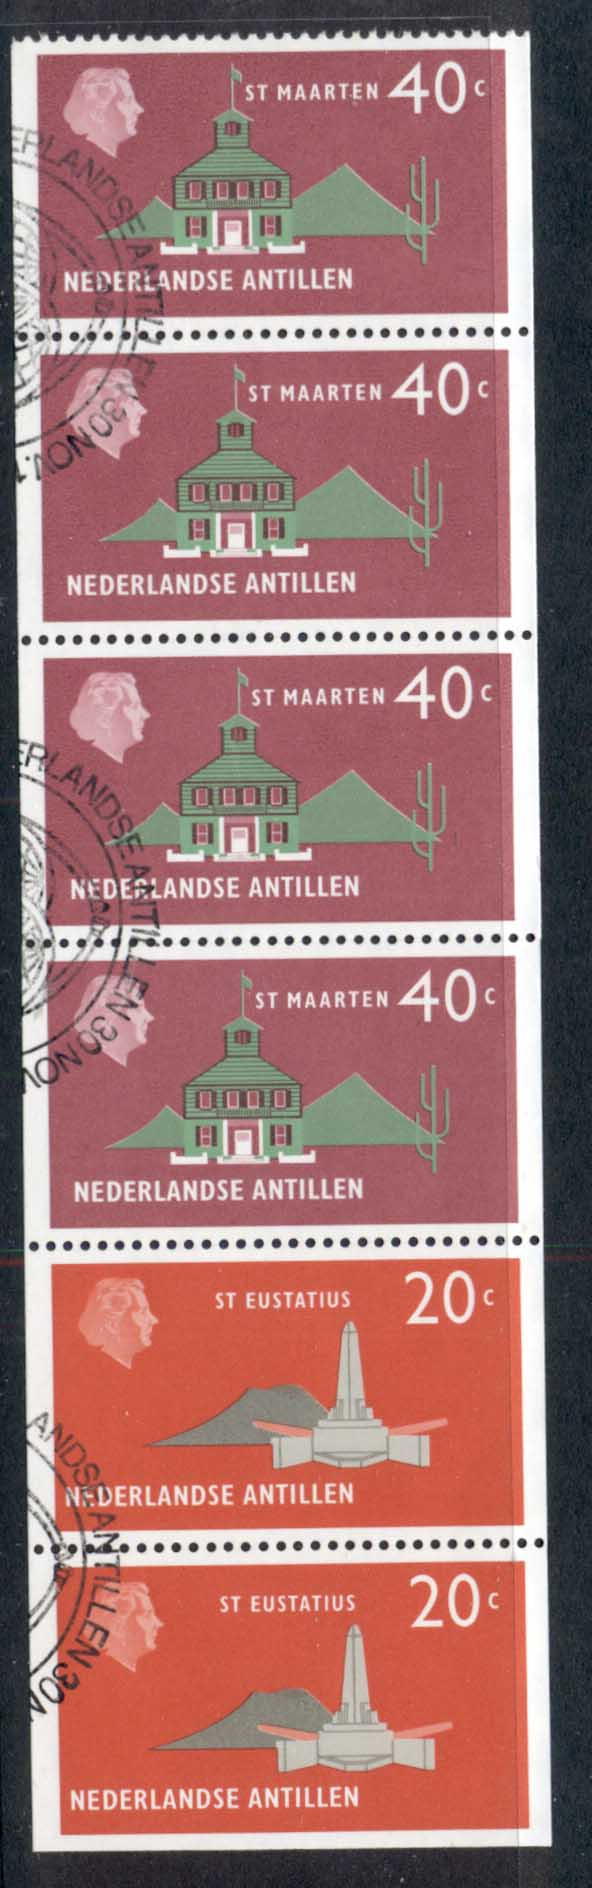 Netherlands Antilles 1977 Building booklet pane 5 FU